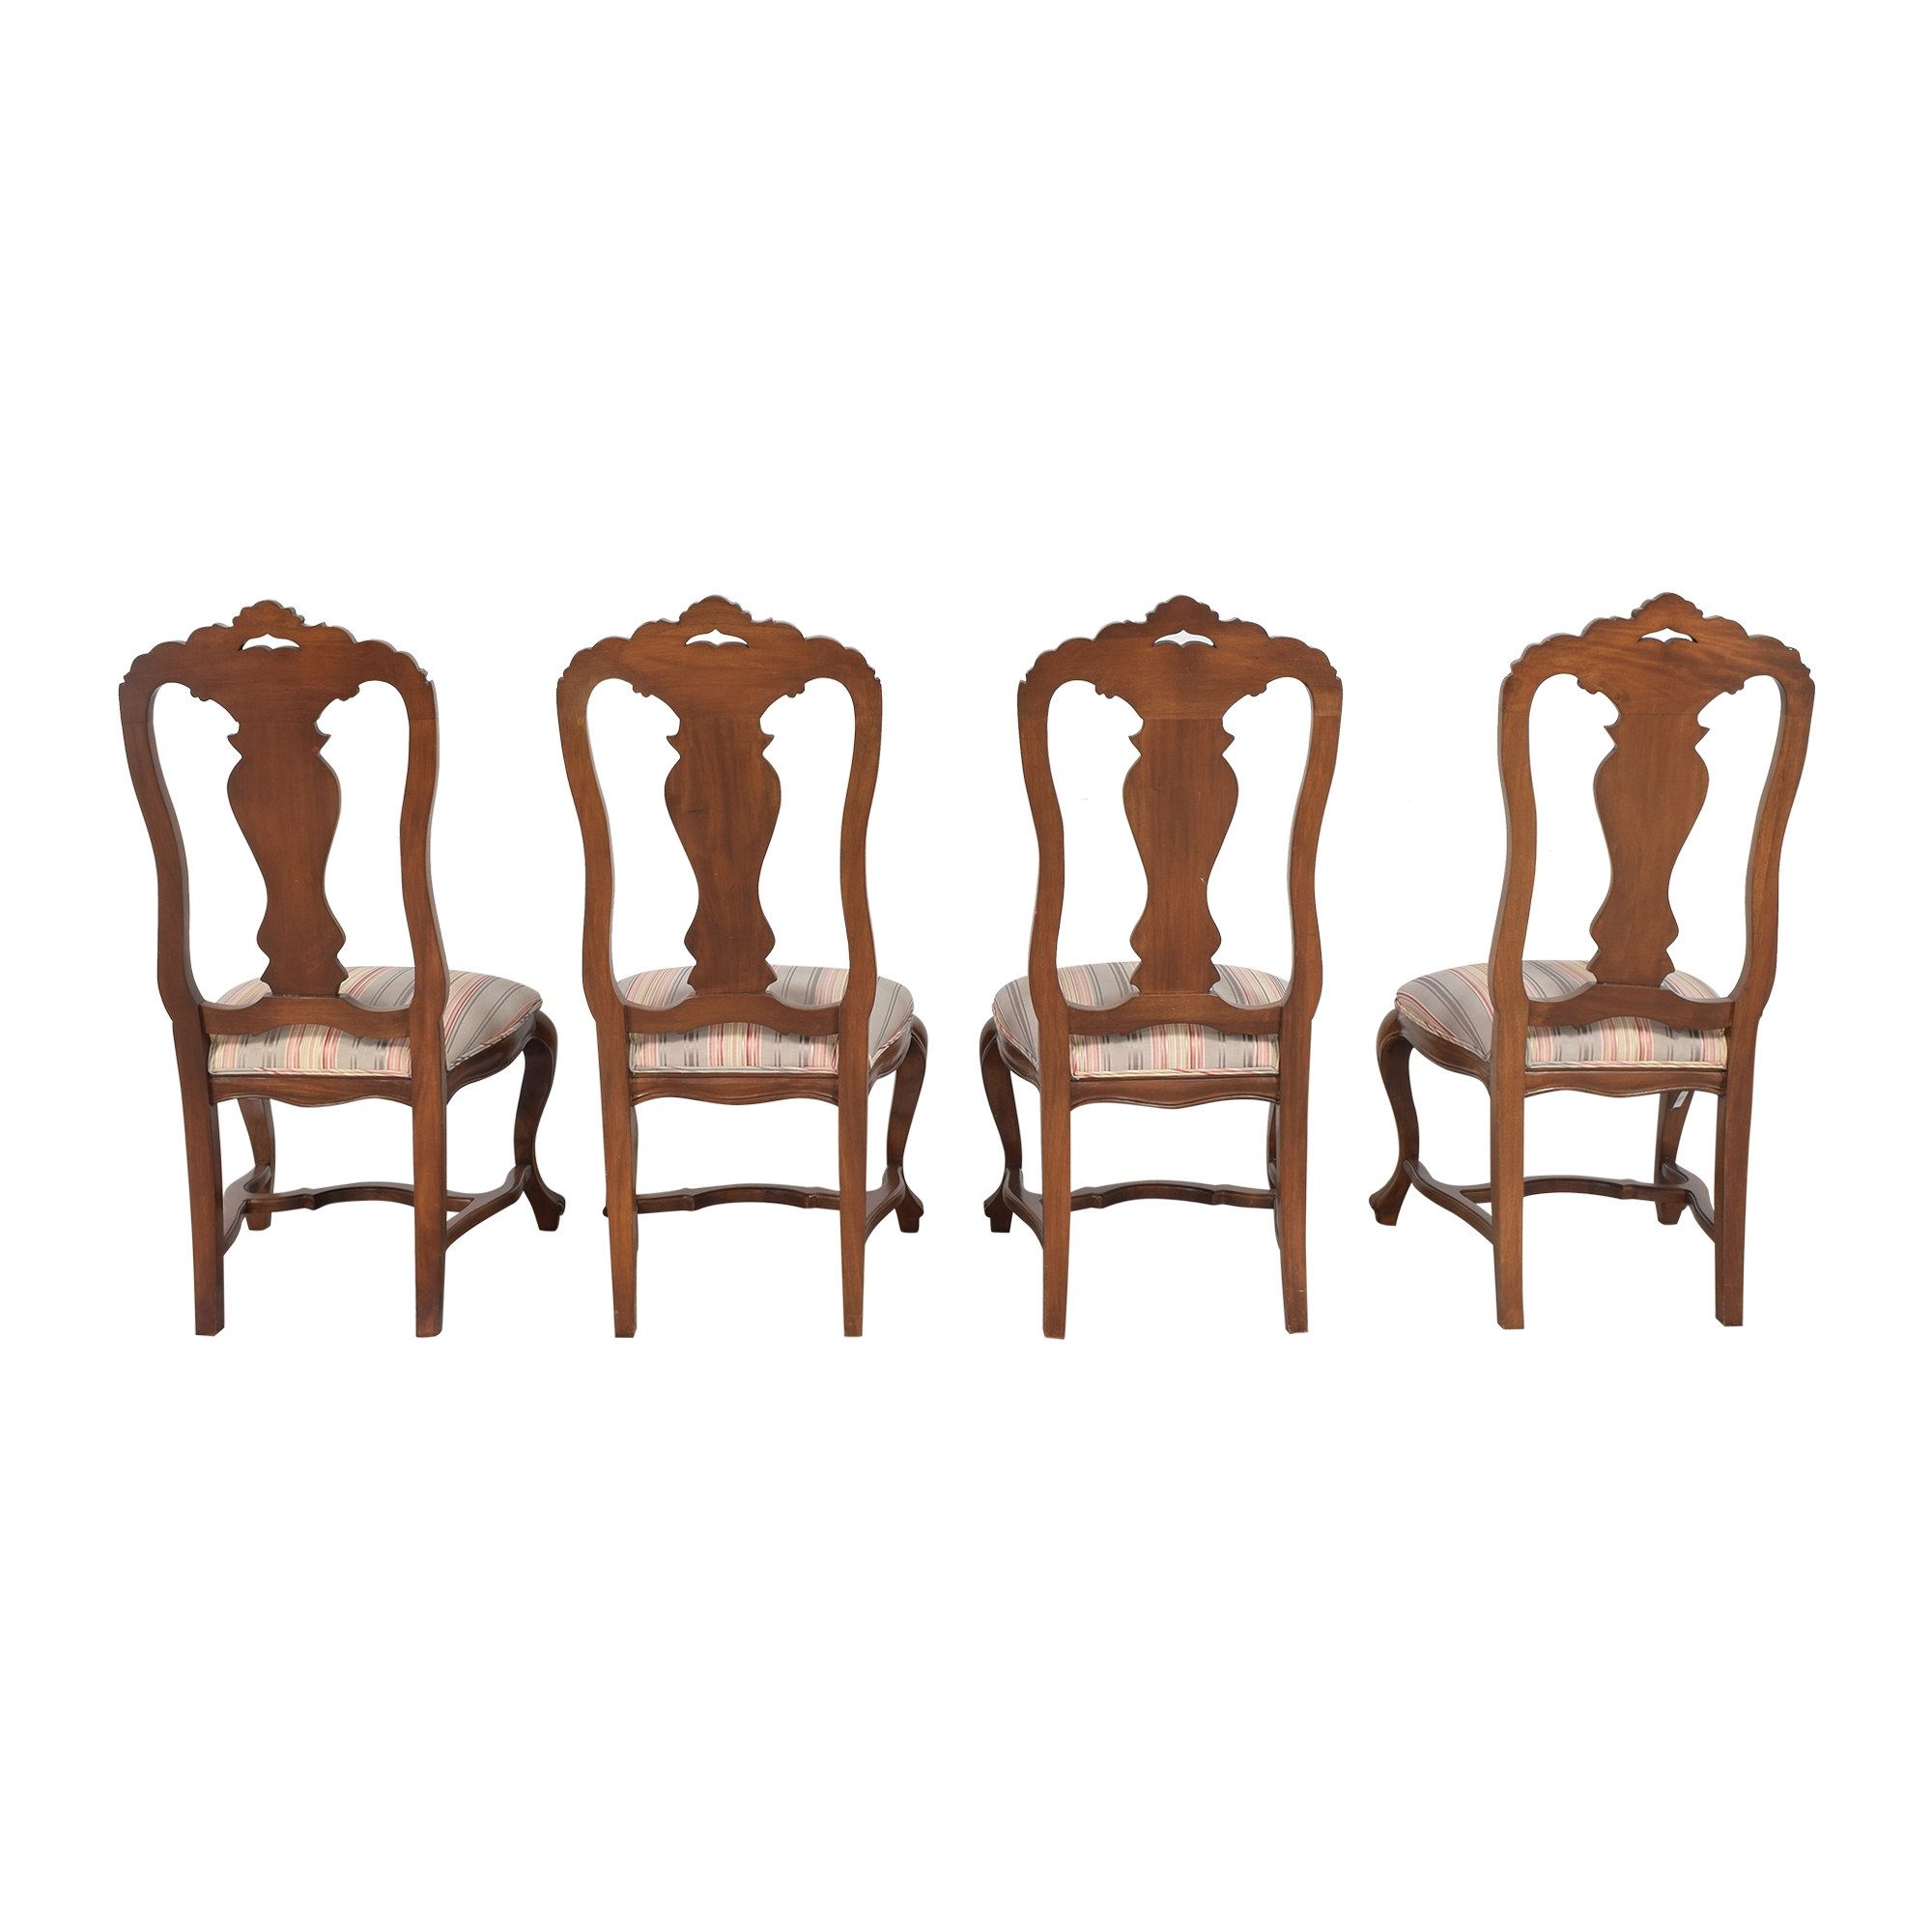 Andre Originals Andre Originals Dining Side Chairs used